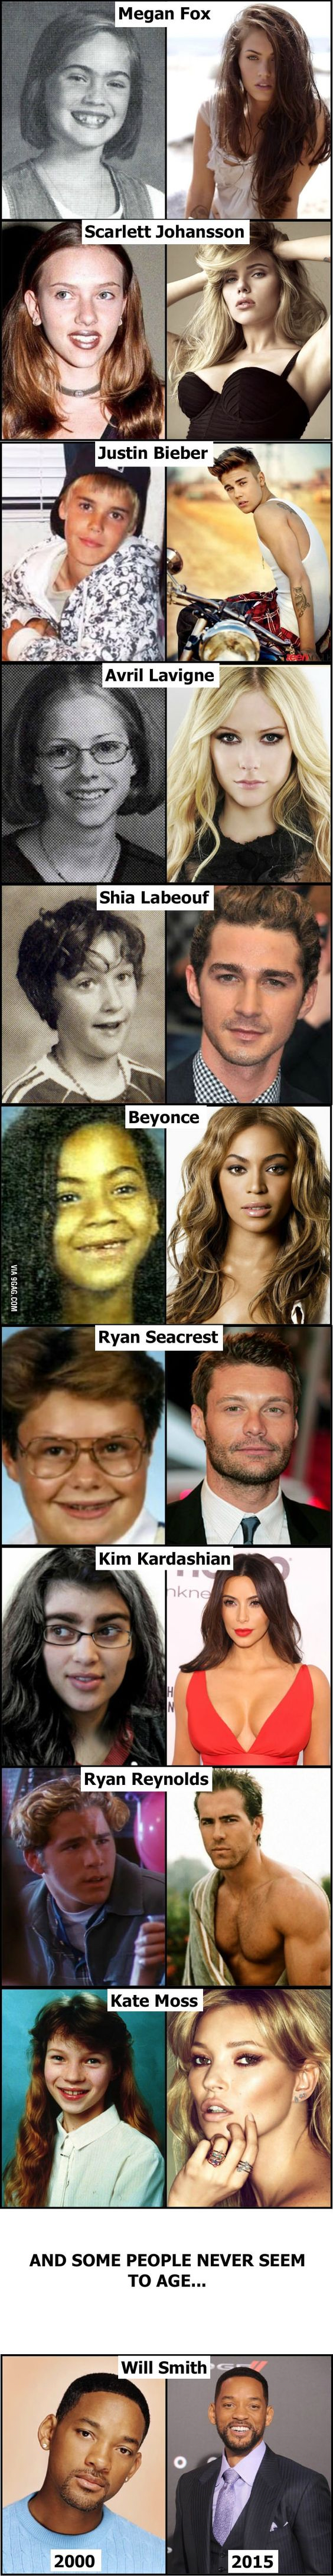 Celebrities then and now... (part 3):